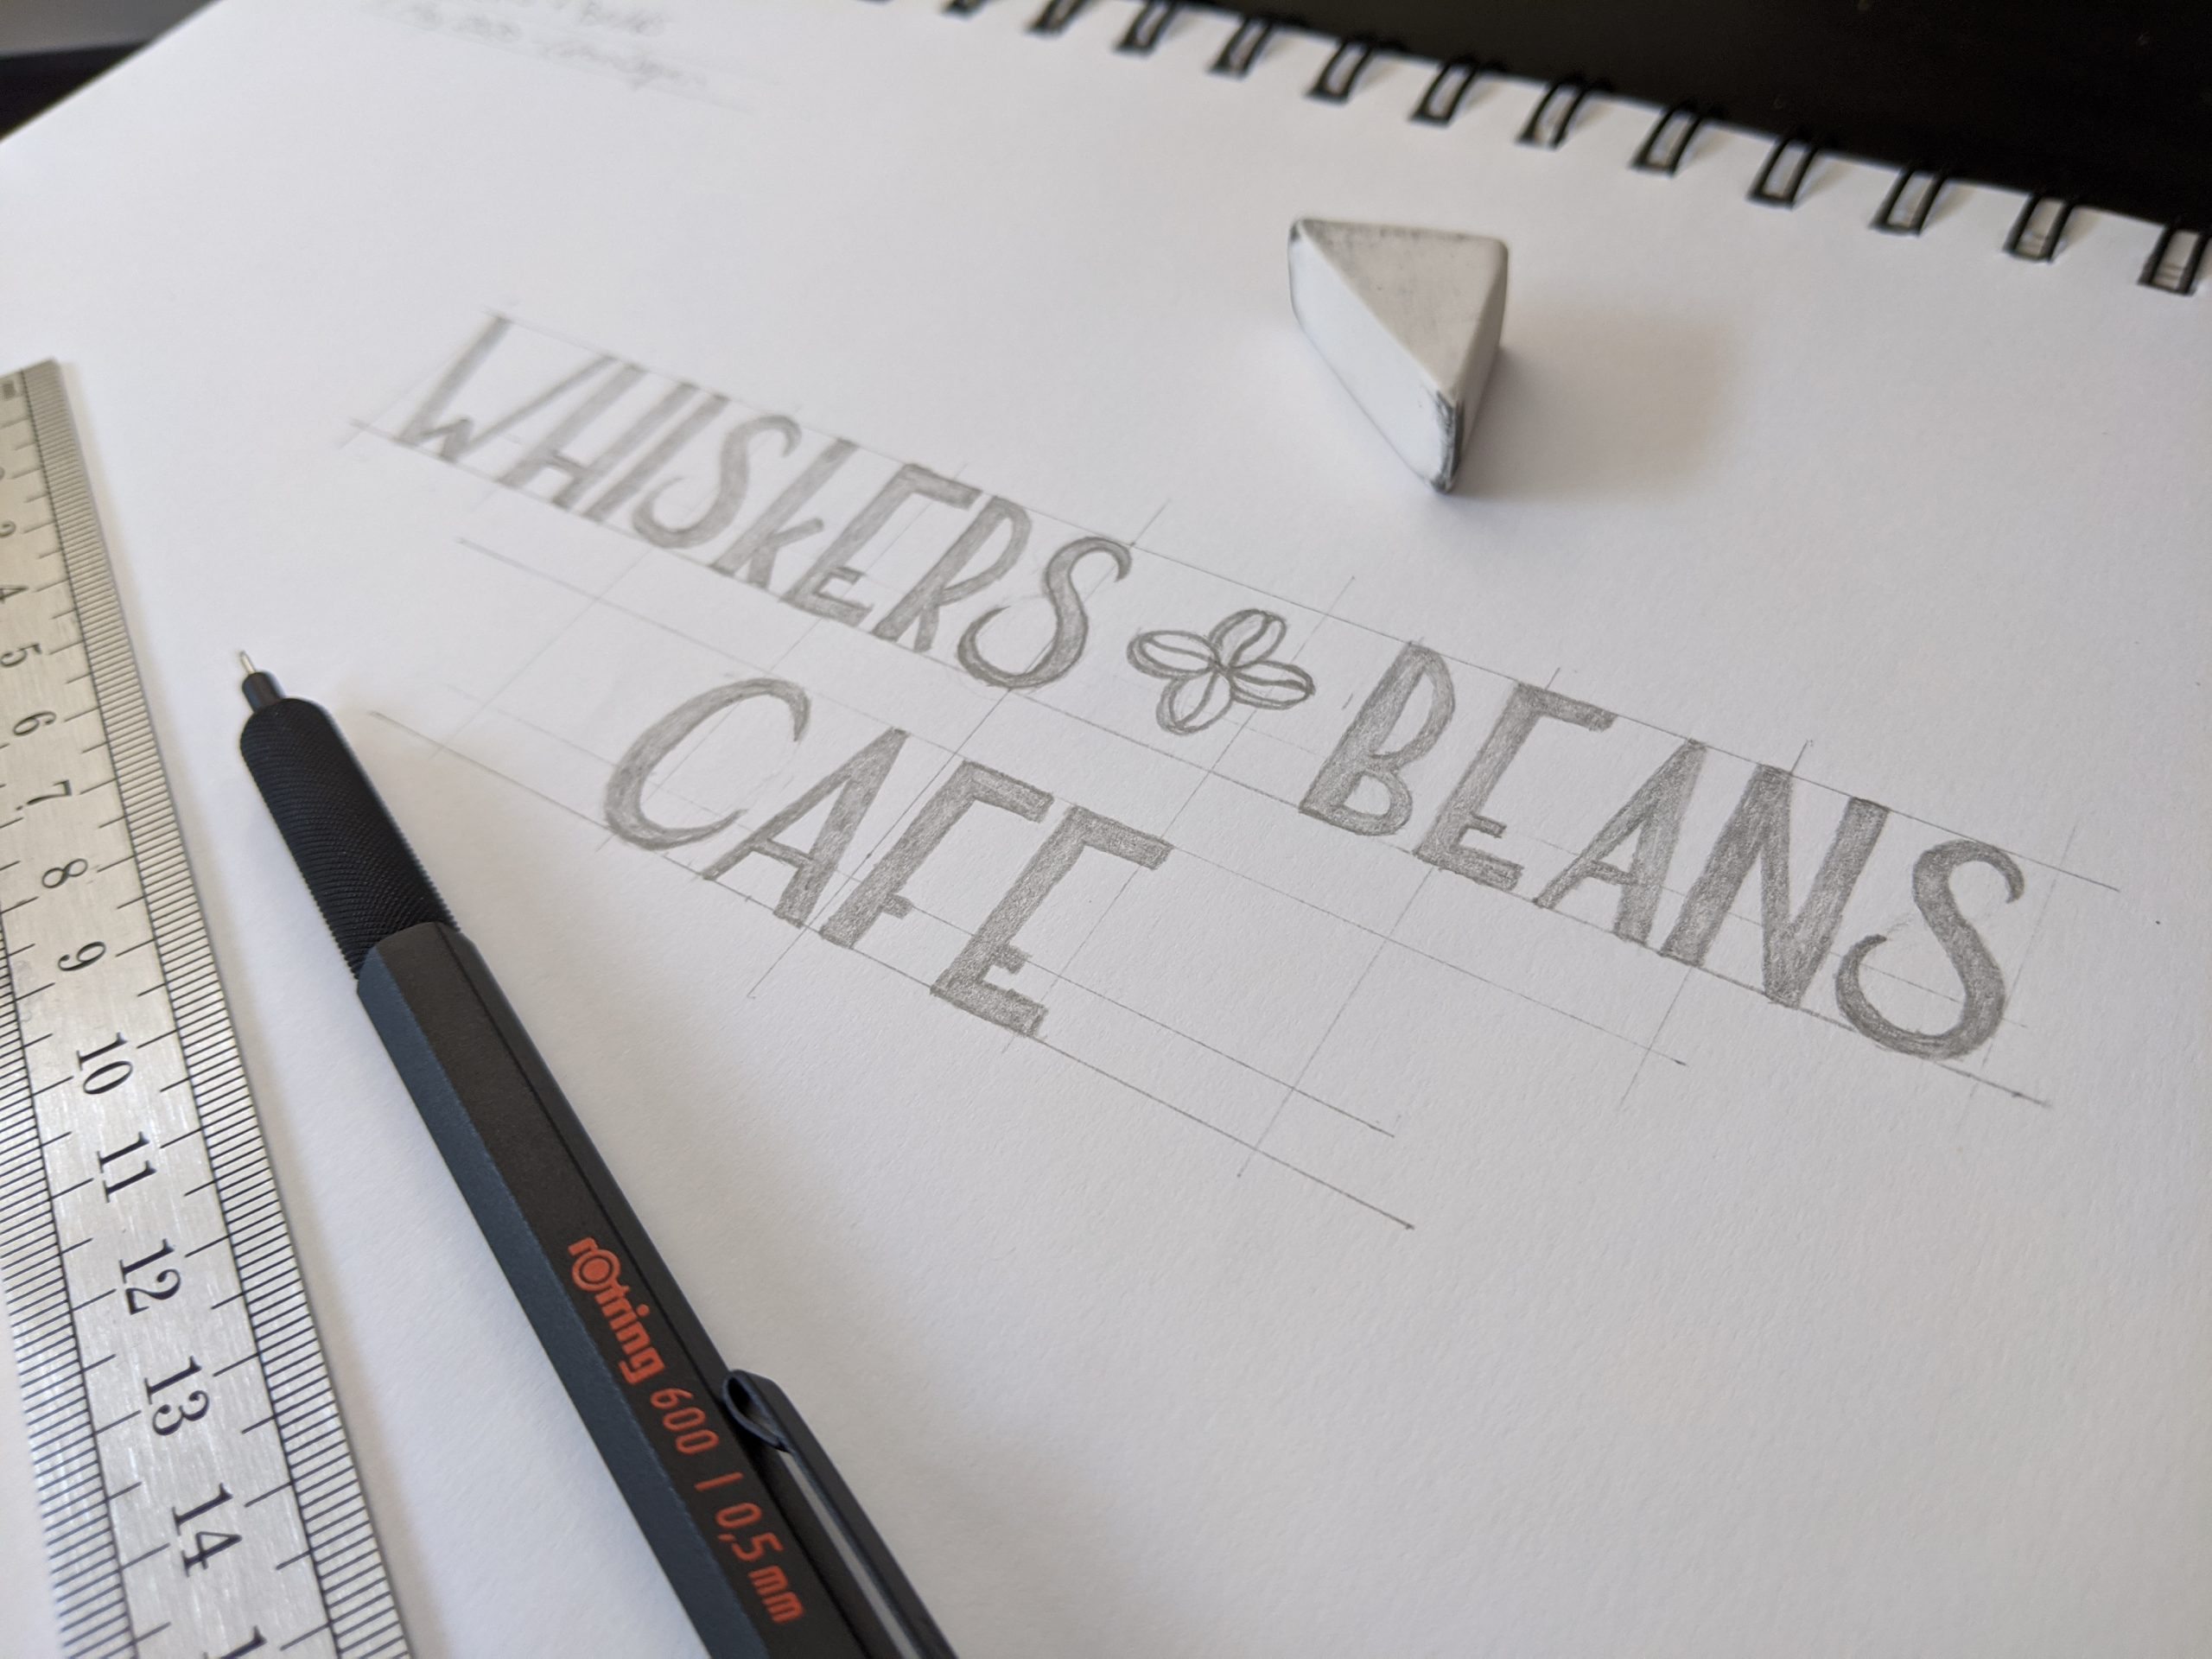 Whiskers & Beans Cafe logo concept